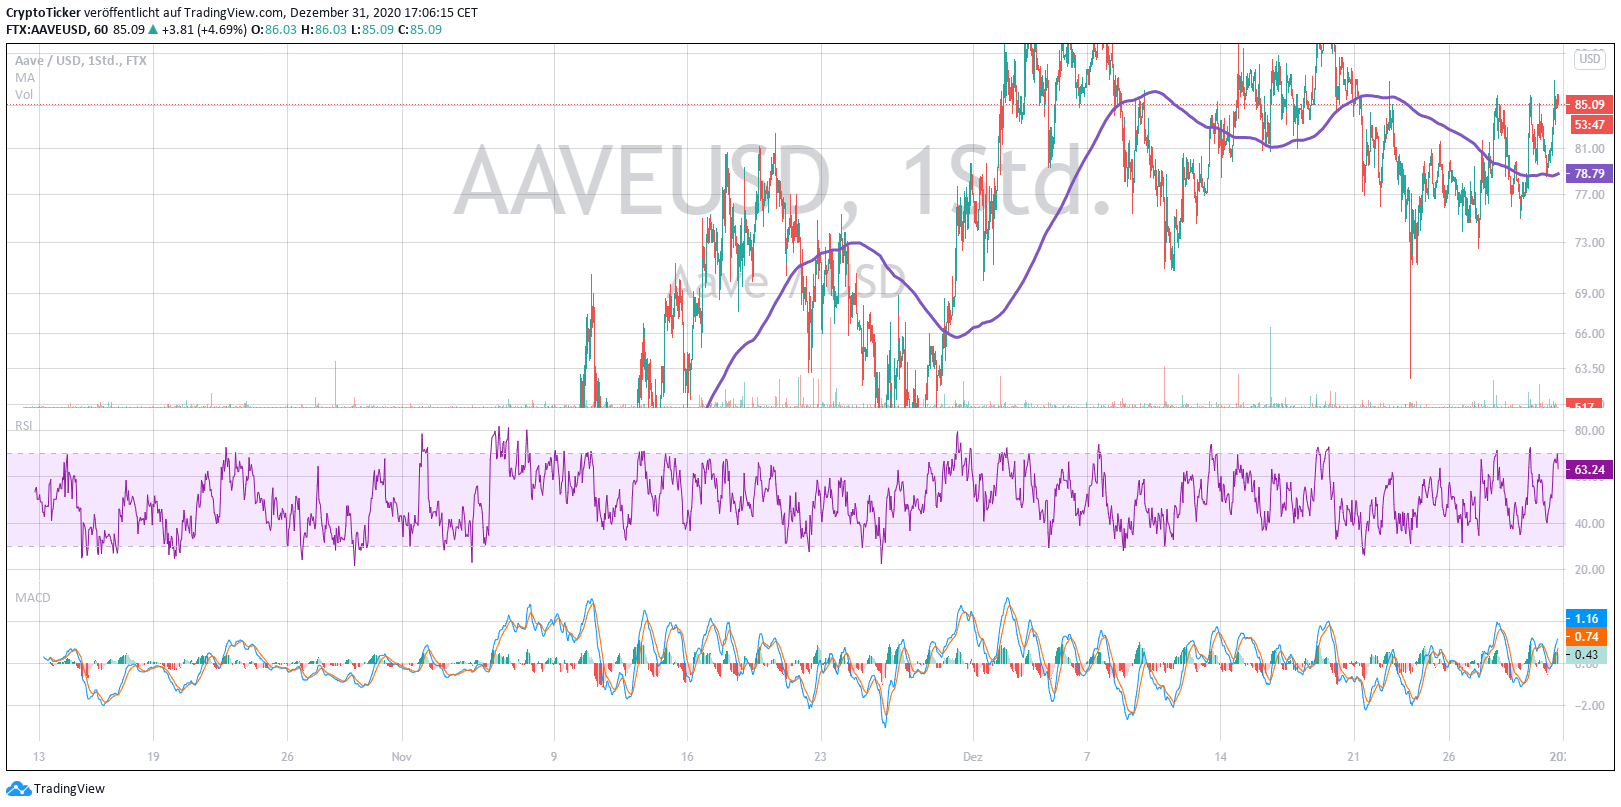 AAVE/USD 1-day chart